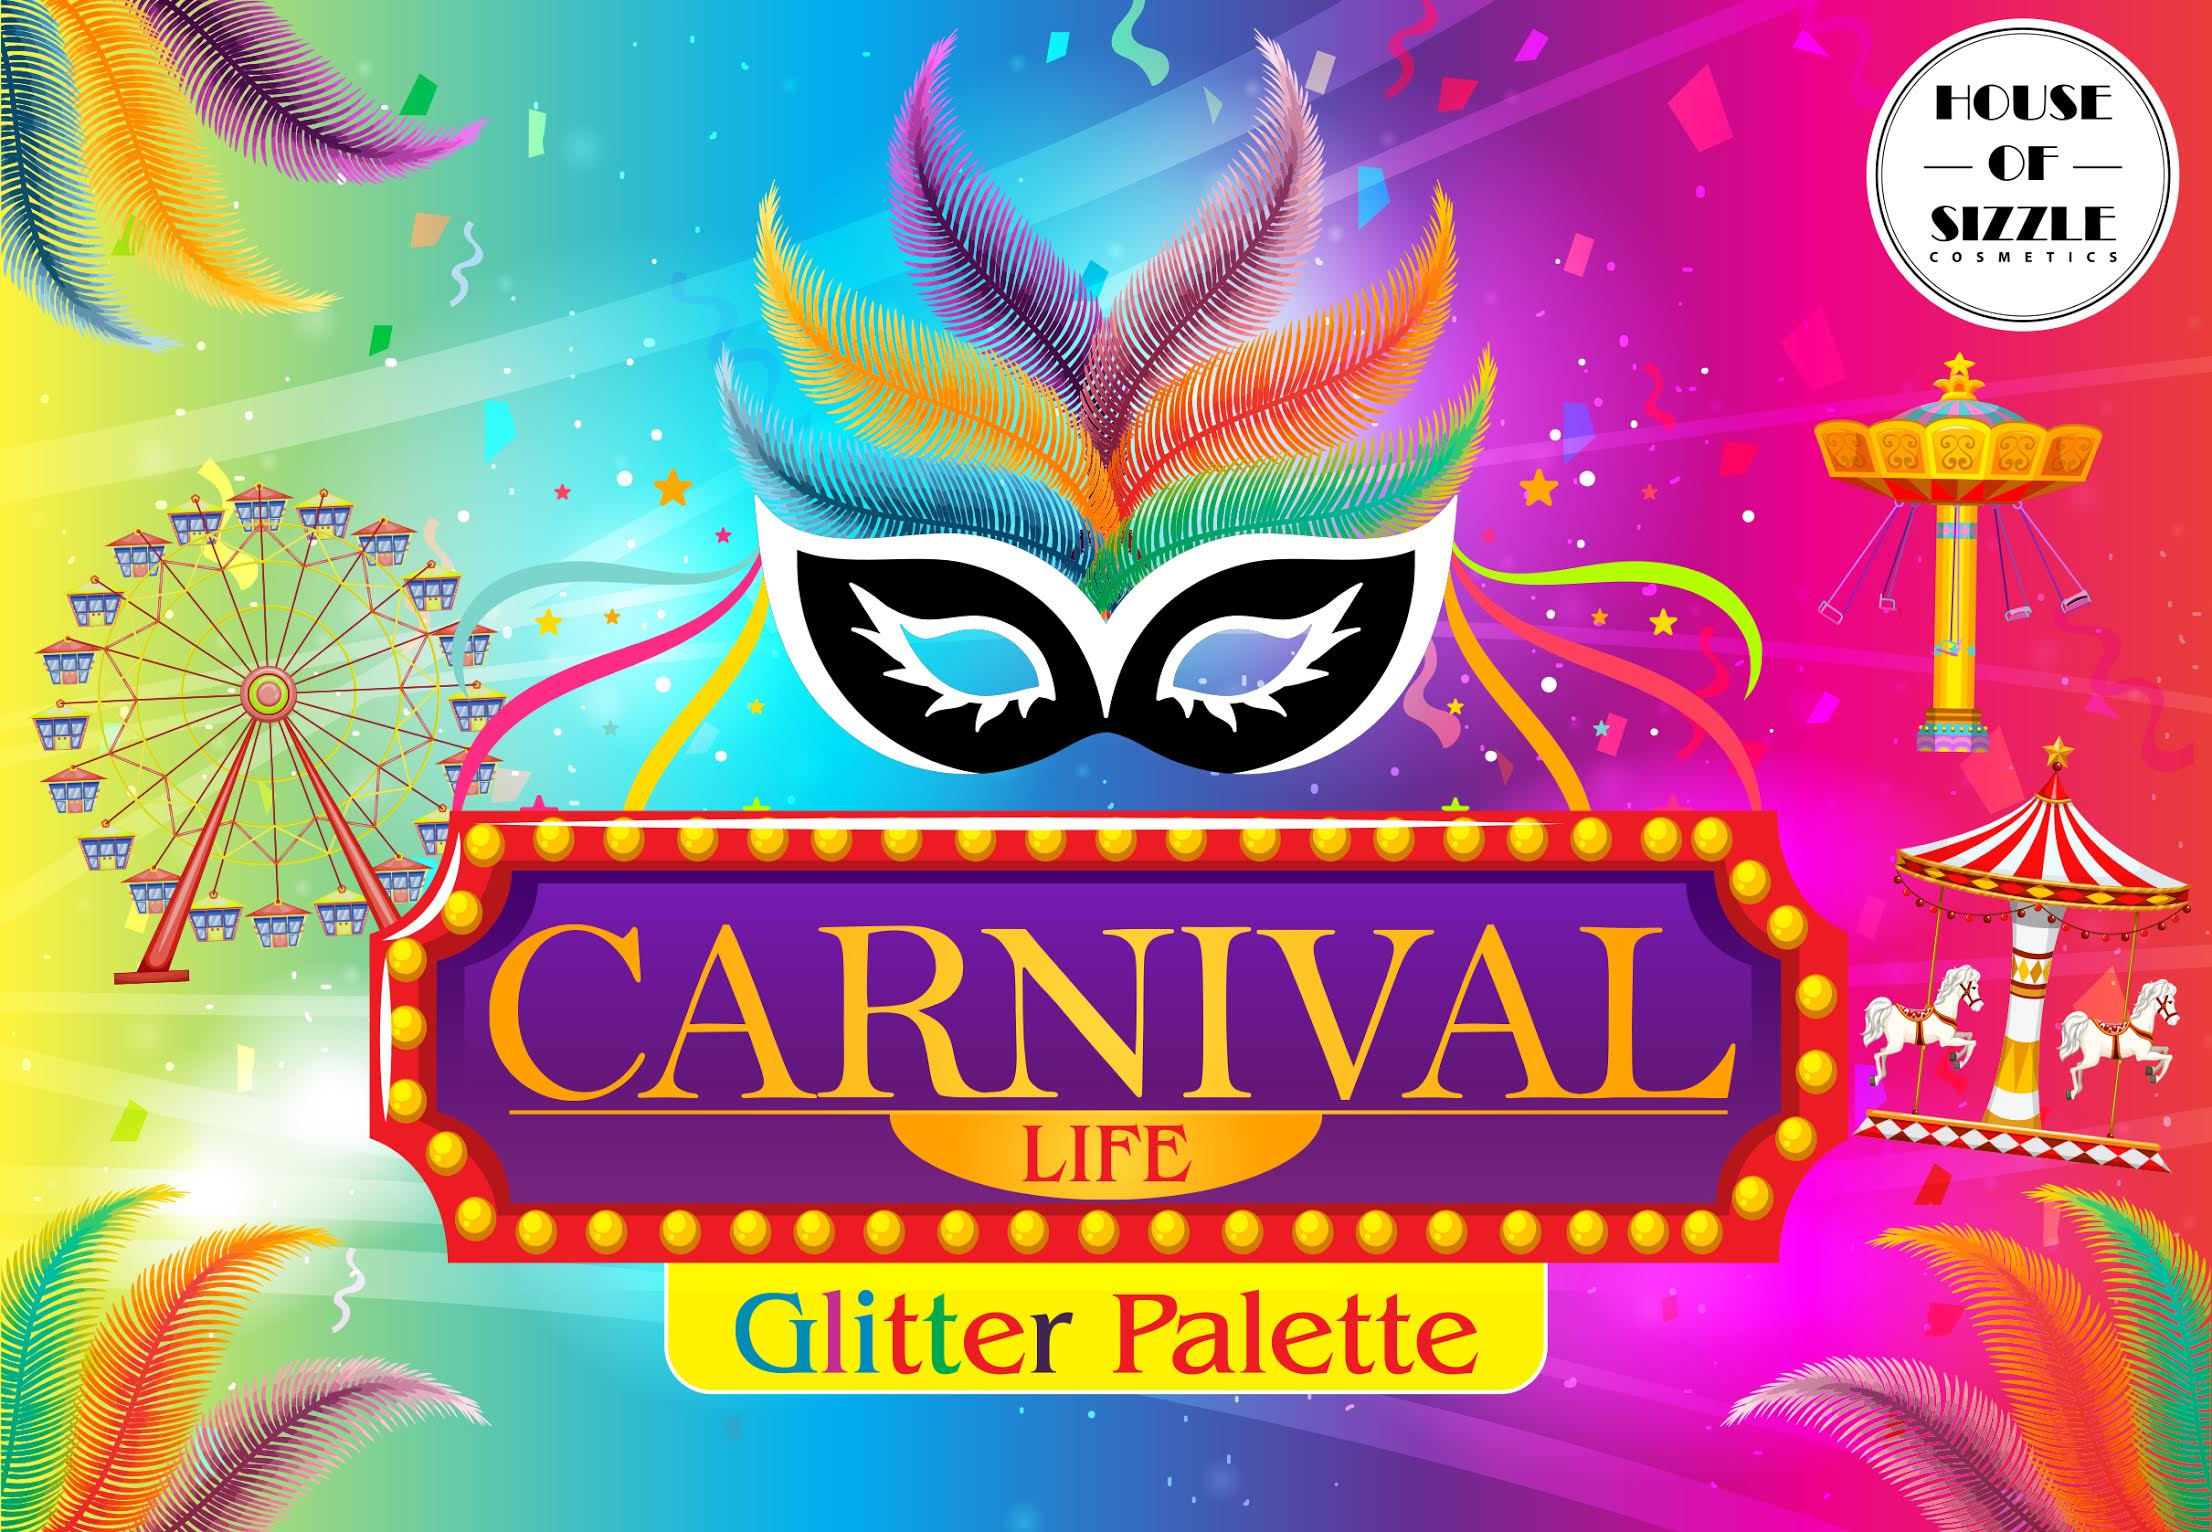 house-of-sizzle-cosmetics-carnival-life-glitter-palette